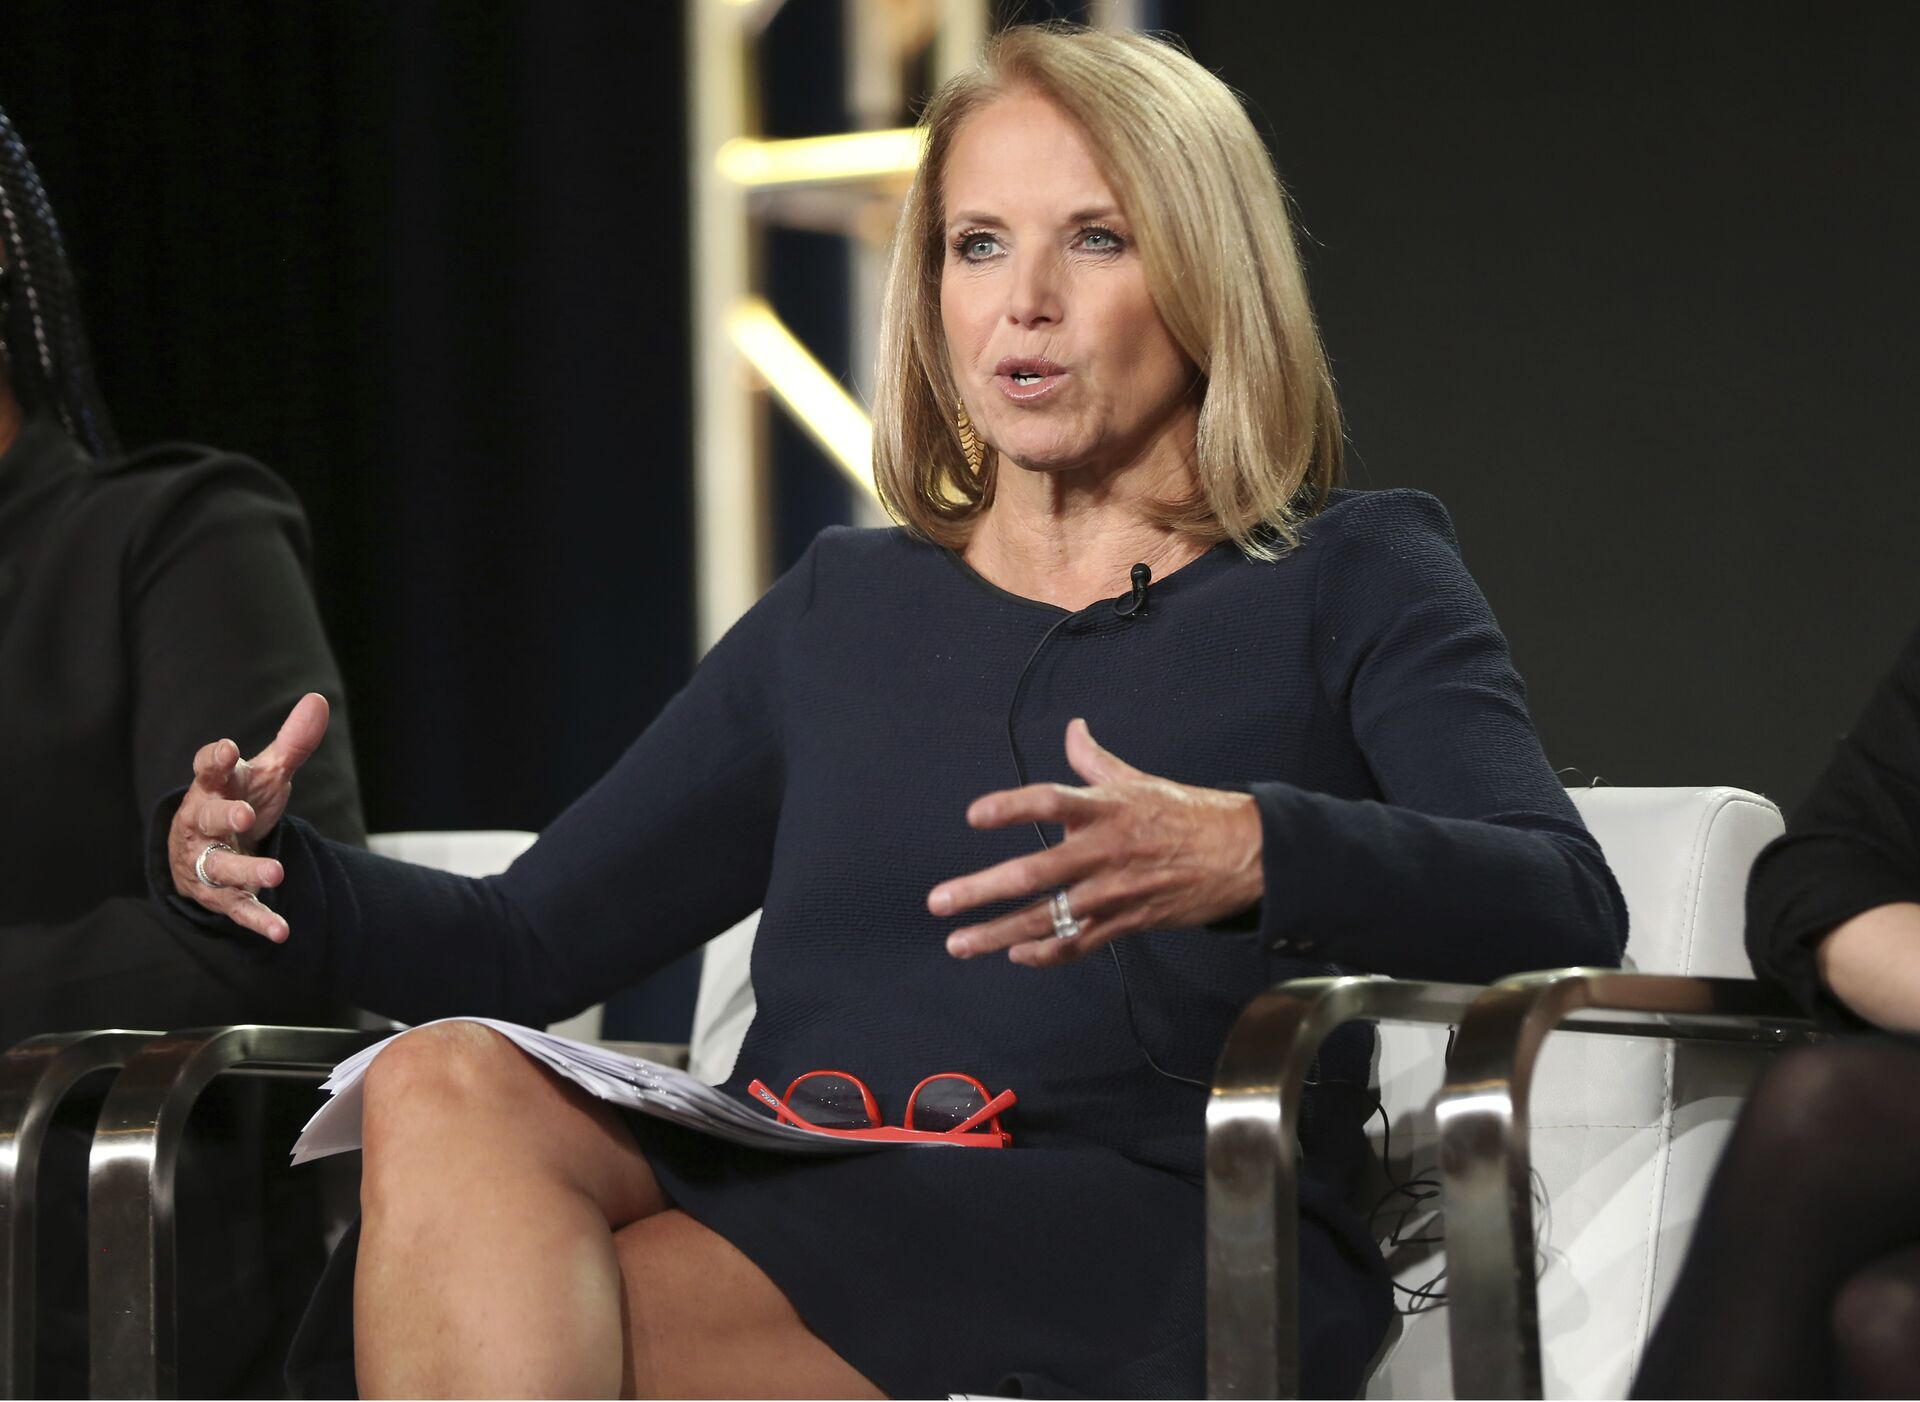 Katie Couric participates in the 'America Inside Out with Katie Kouric' panel during the National Geographic Television Critics Association Winter Press Tour on Saturday, Jan. 13, 2018, in Pasadena, Calif. - Sputnik International, 1920, 13.10.2021